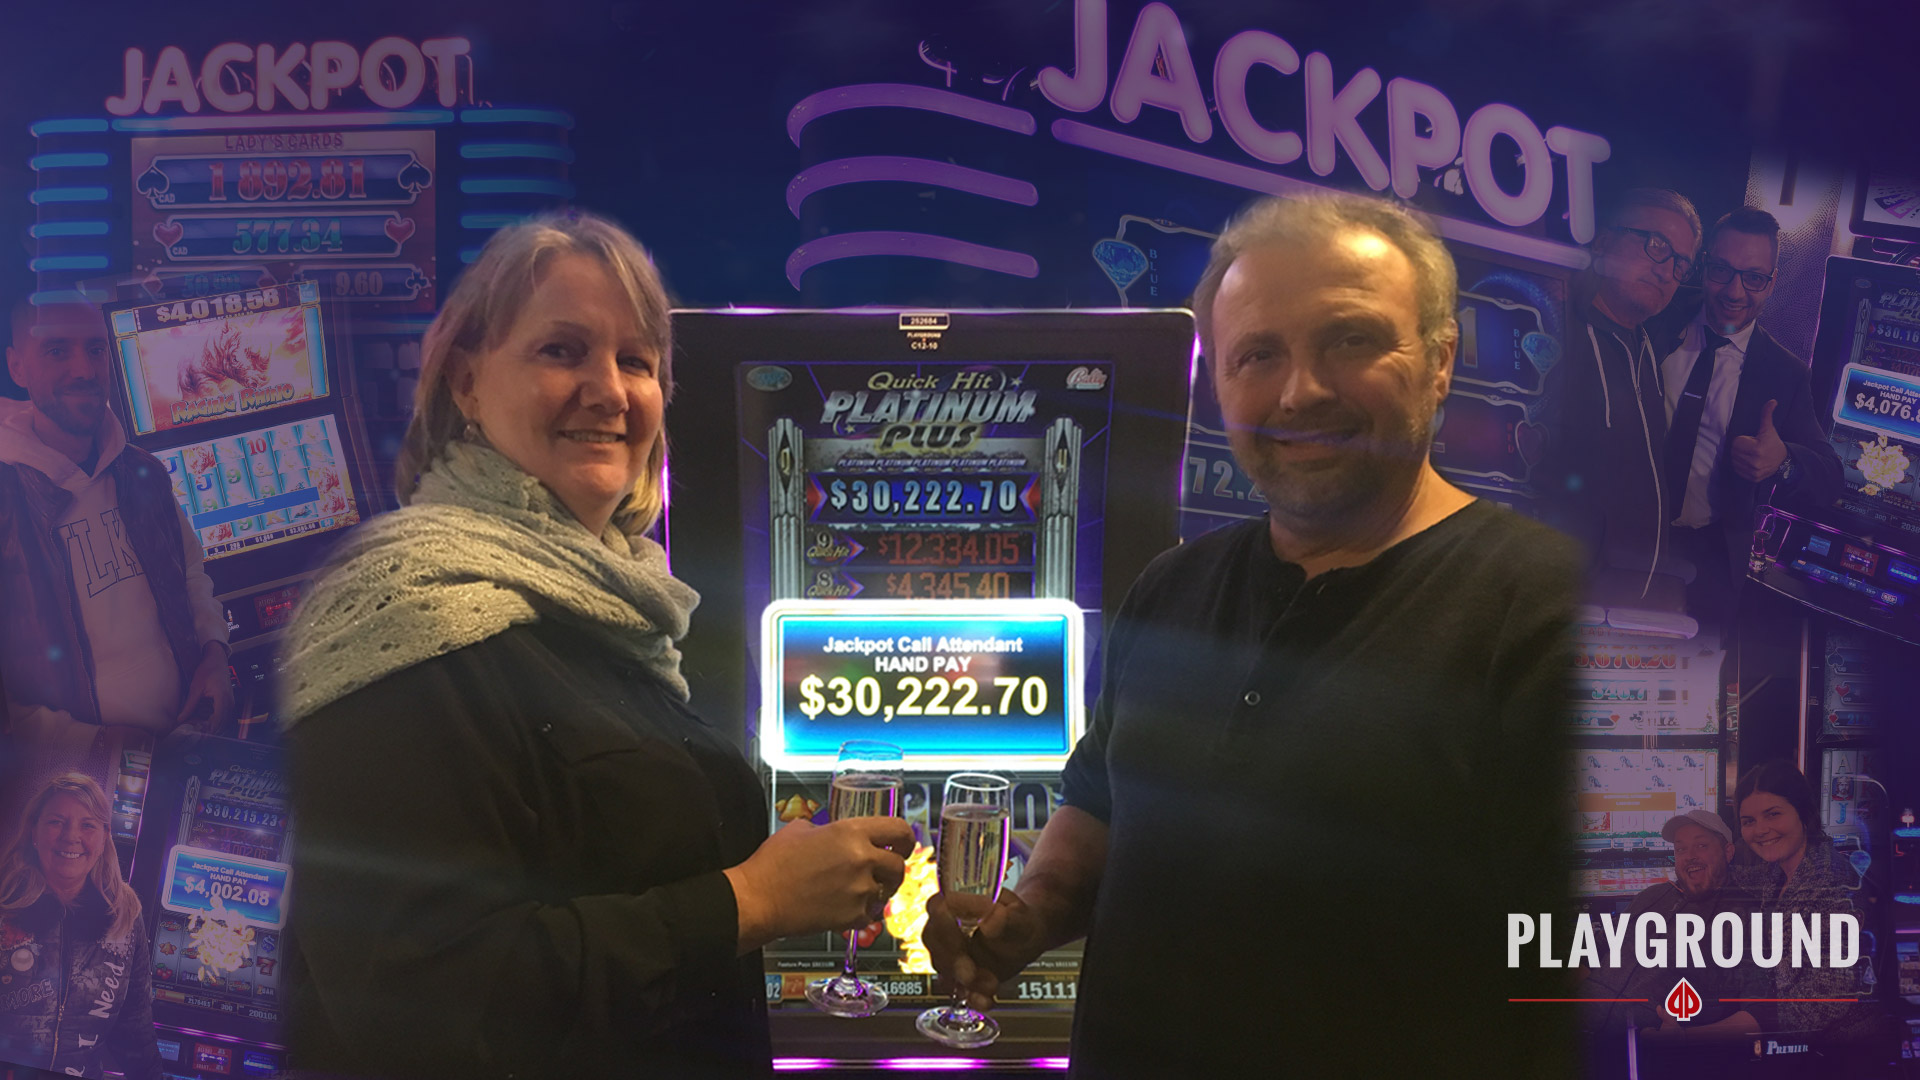 Our biggest Jackpot to date!